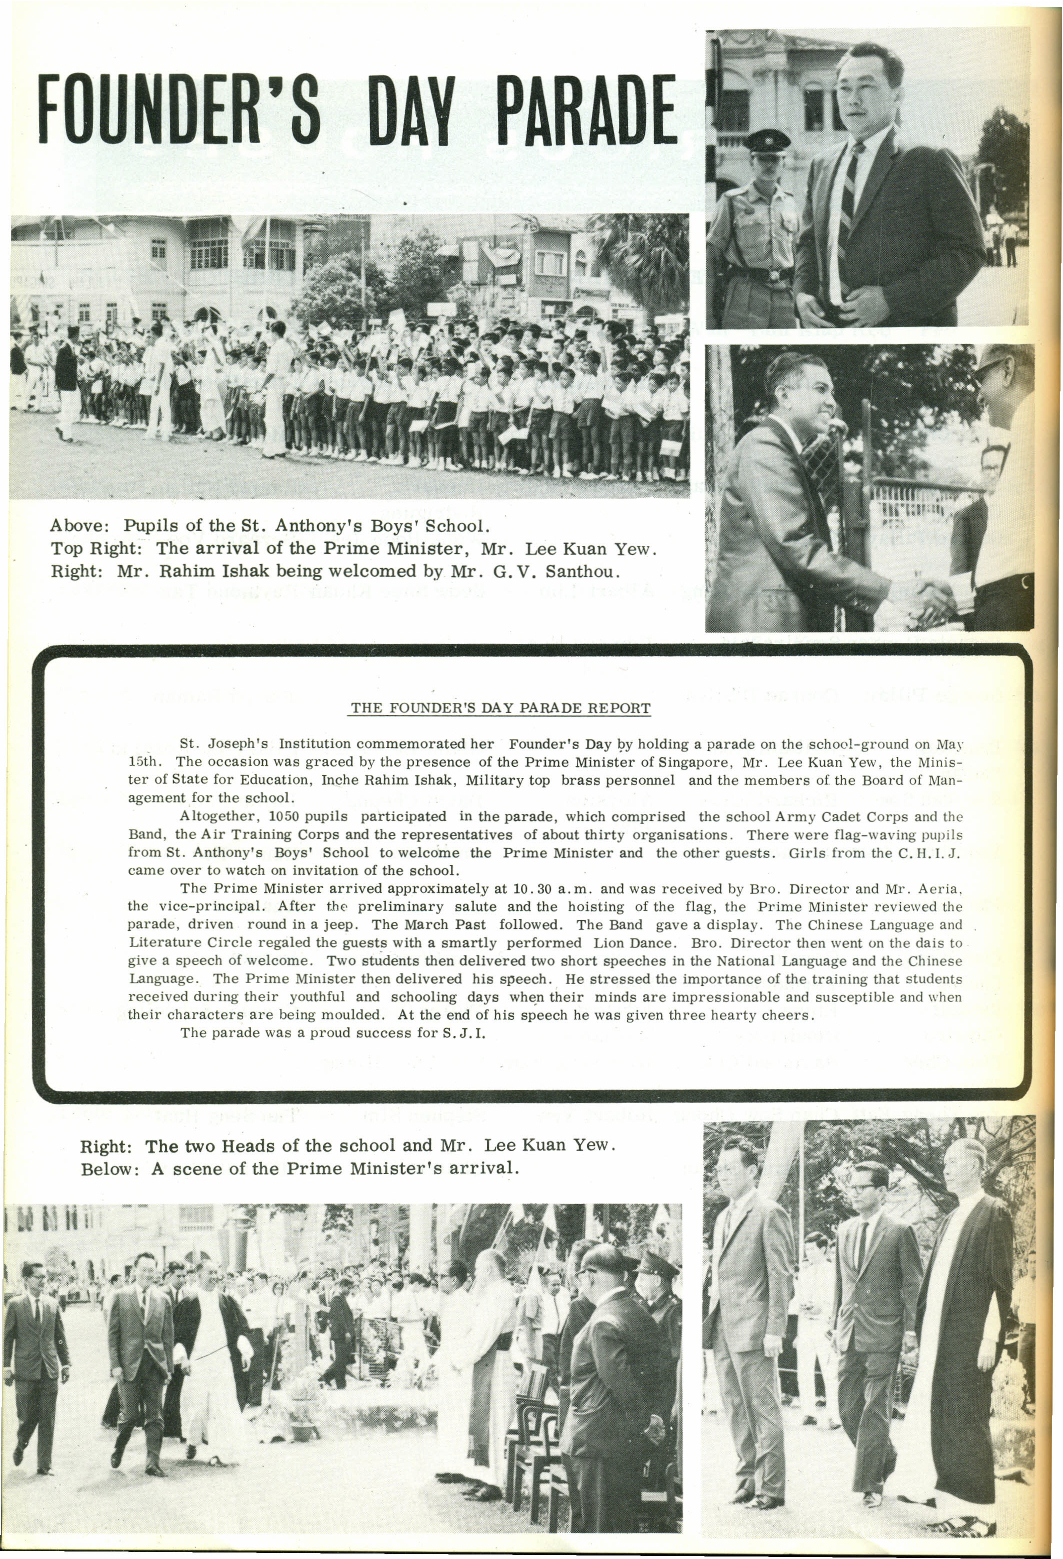 Mr LKY in SJI in 1967 AP-1.jpg